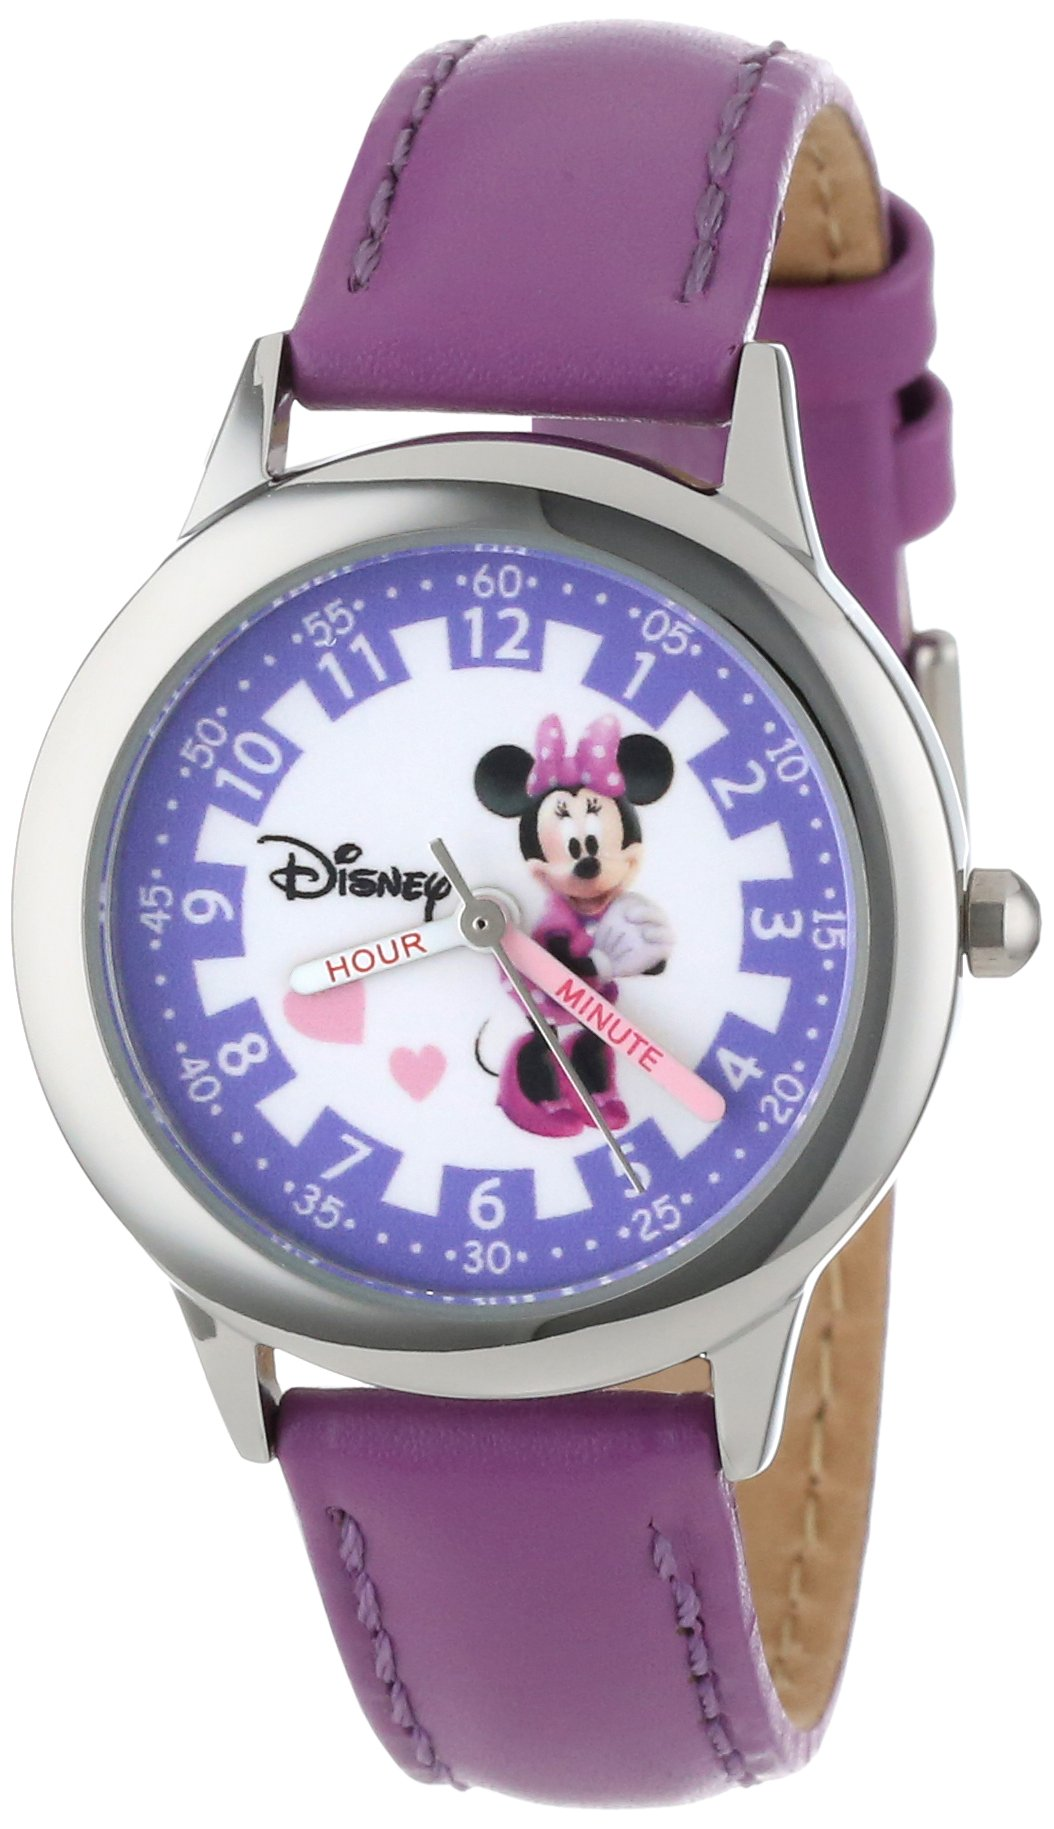 Disney Kids' W000039 Minnie Mouse Time Teacher Stainless Steel Watch with Purple Leather Band by Disney